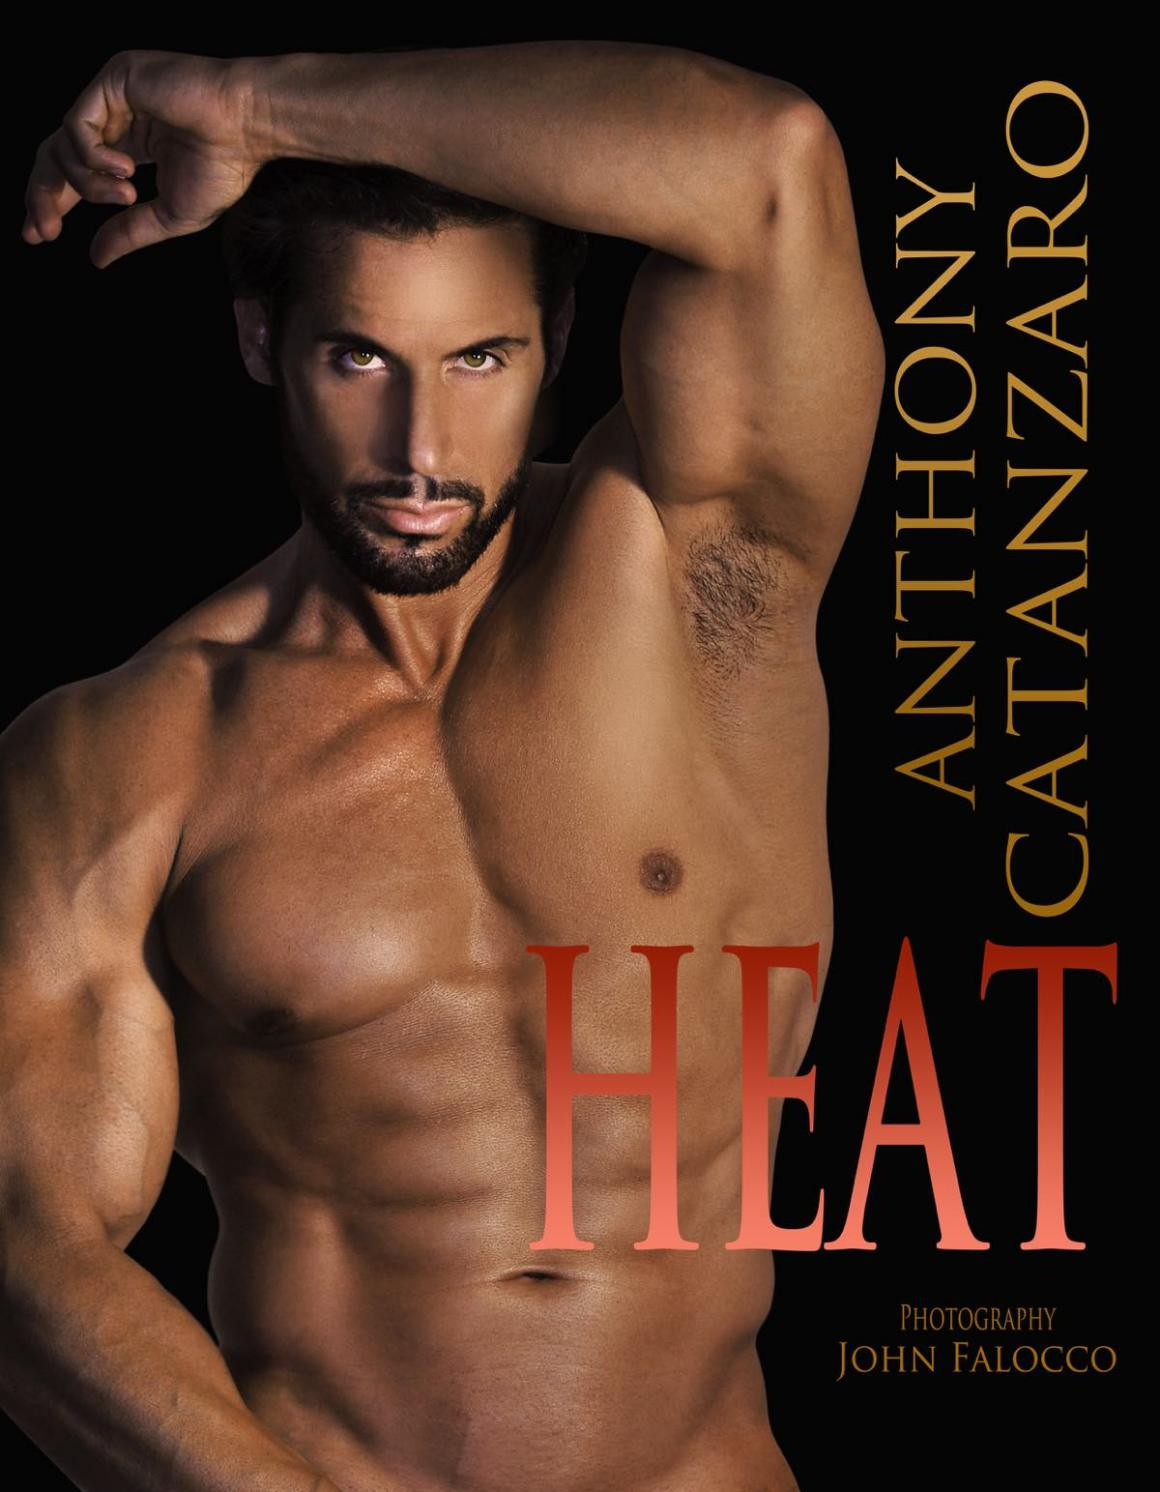 Model Anthony Catanzaro from Heat